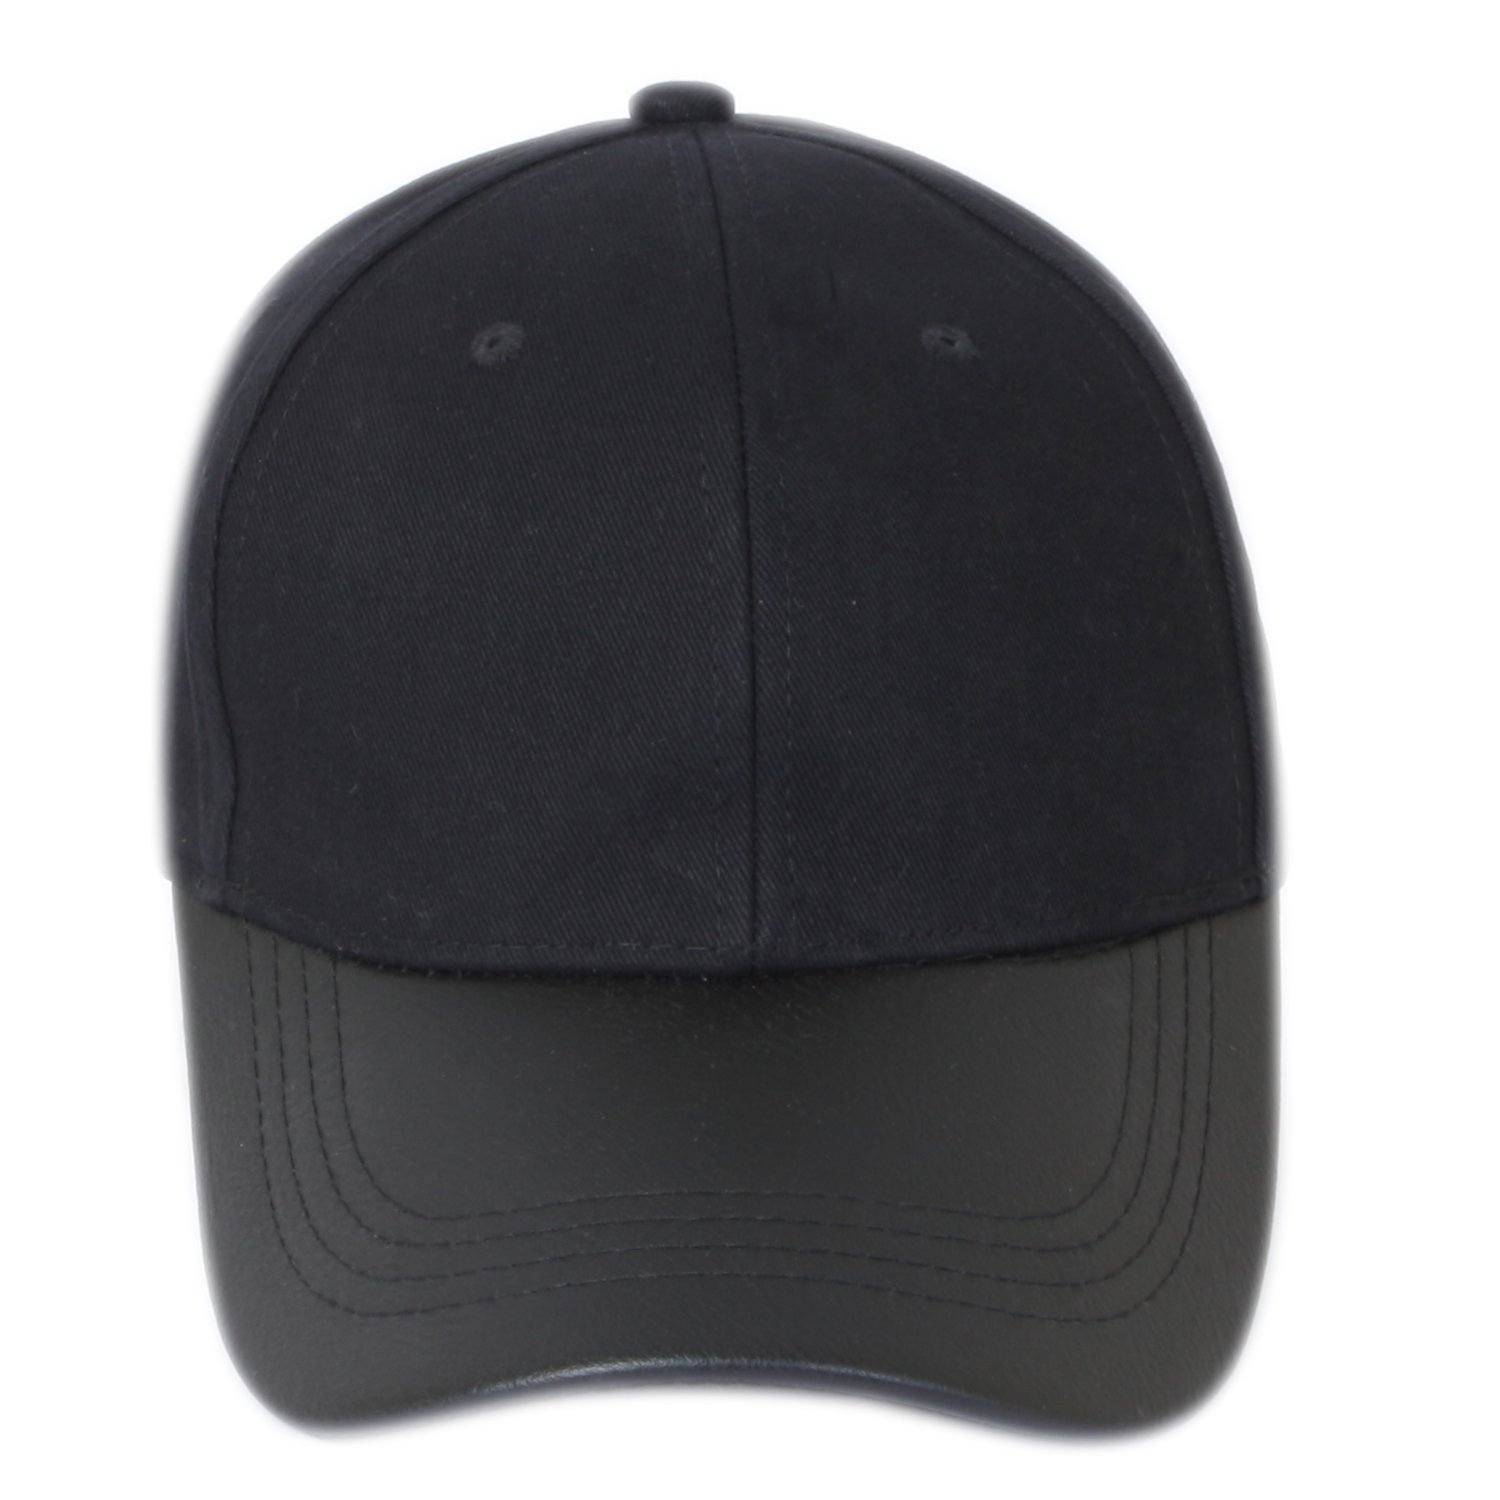 c490a0f0052 ILU Men s Faux Leather n Cotton Baseball Cap Black Freesize  Amazon.in   Clothing   Accessories